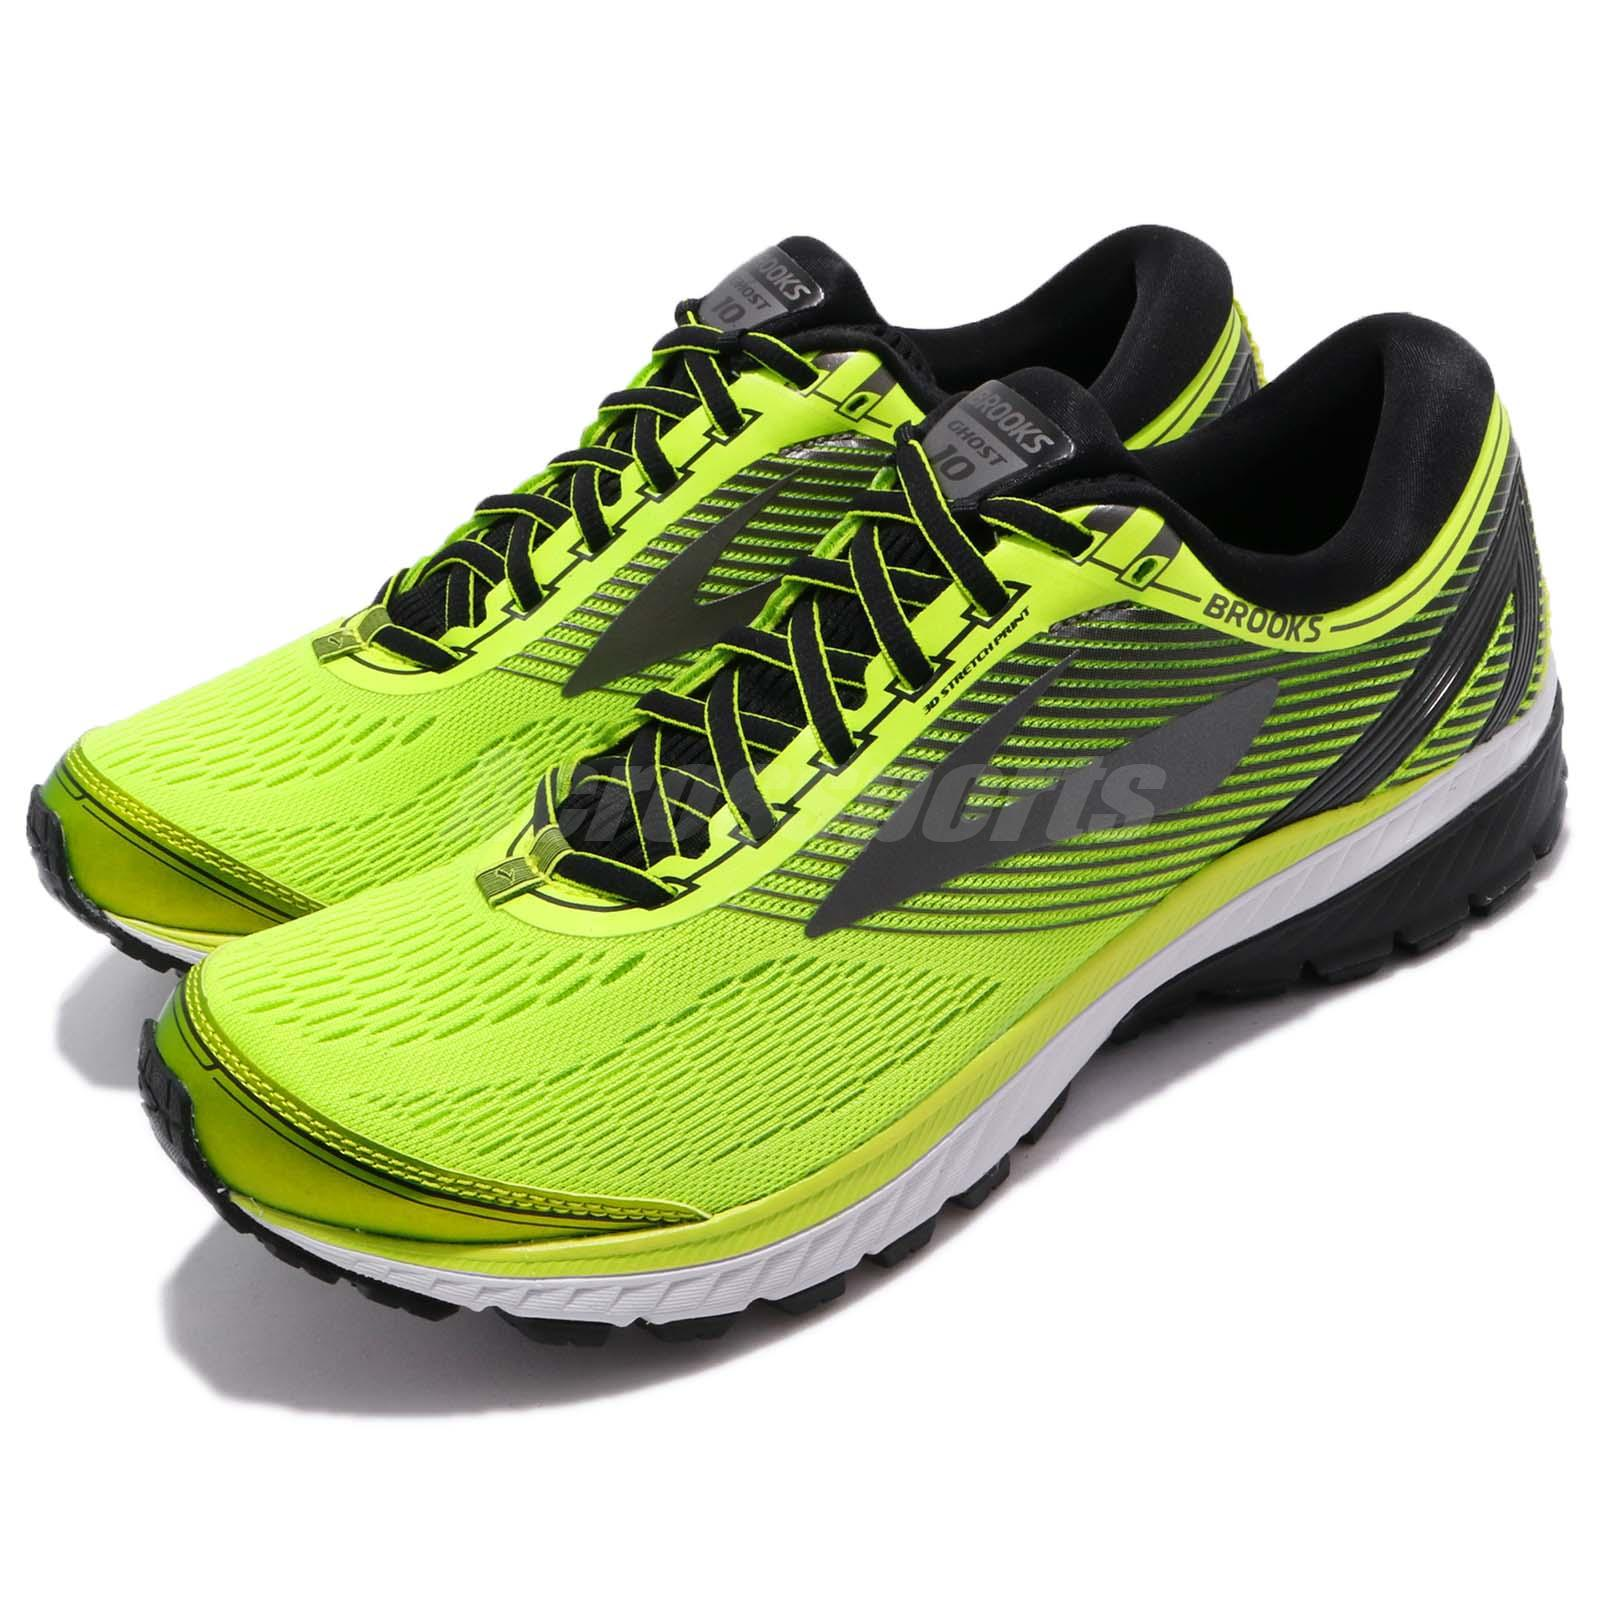 9c2bf3ed9a4 Details about Brooks Ghost 10 Neutral Lime Black Metallic Charcoal Volt Men  Running 110257 1D